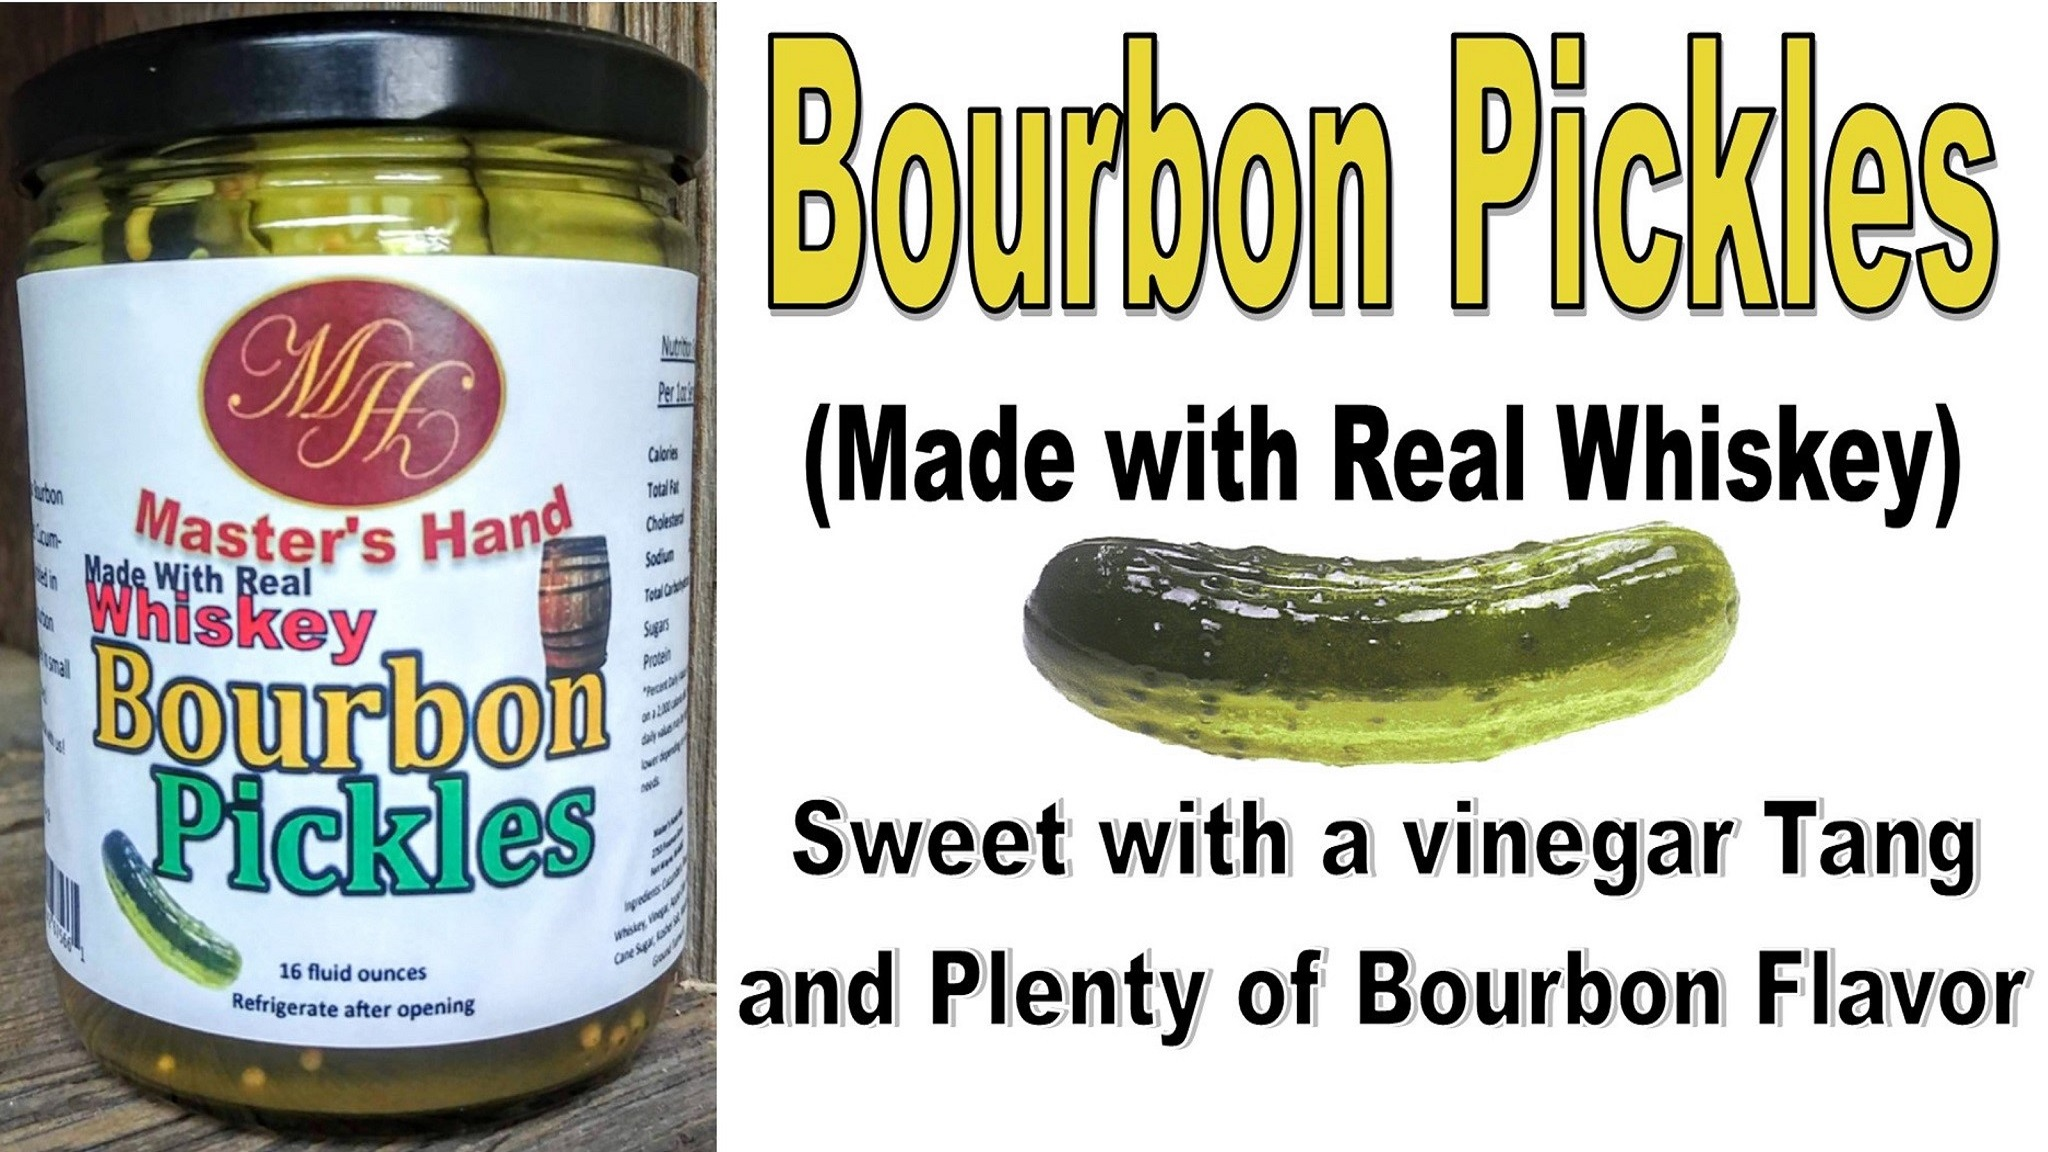 Bourbon Pickles